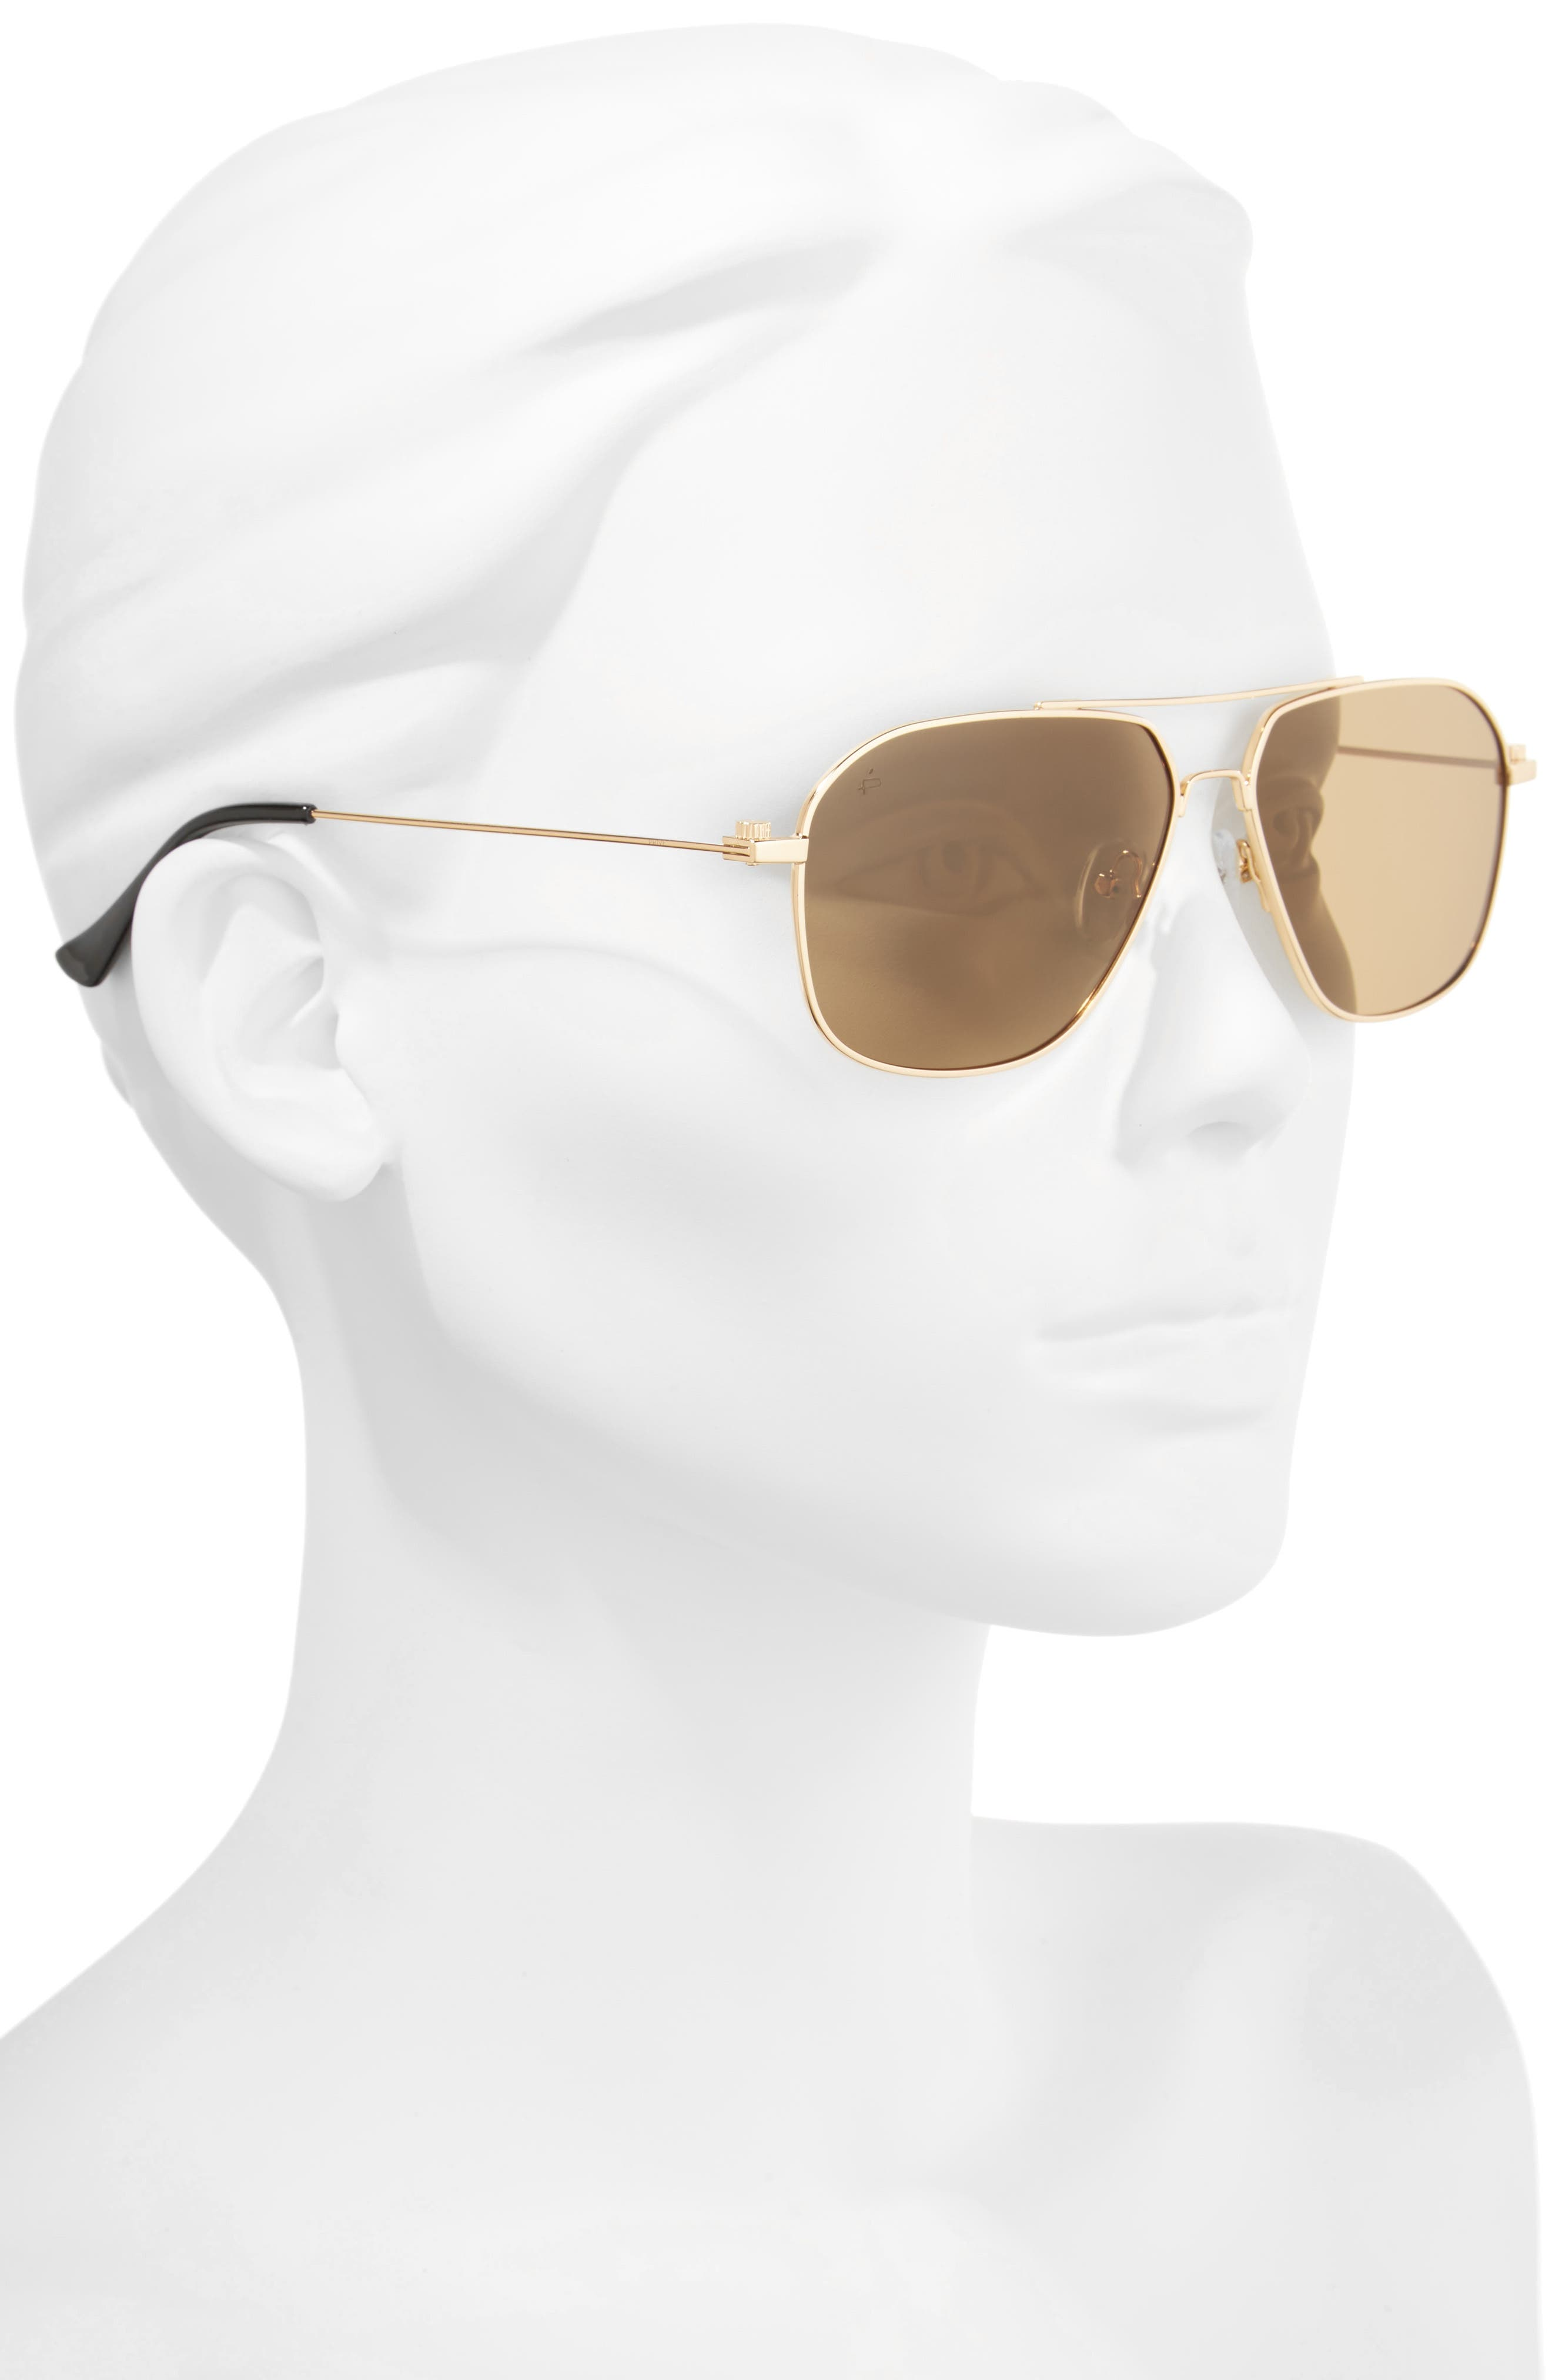 Privé Revaux The Marquise 58mm Aviator Sunglasses,                             Alternate thumbnail 2, color,                             710